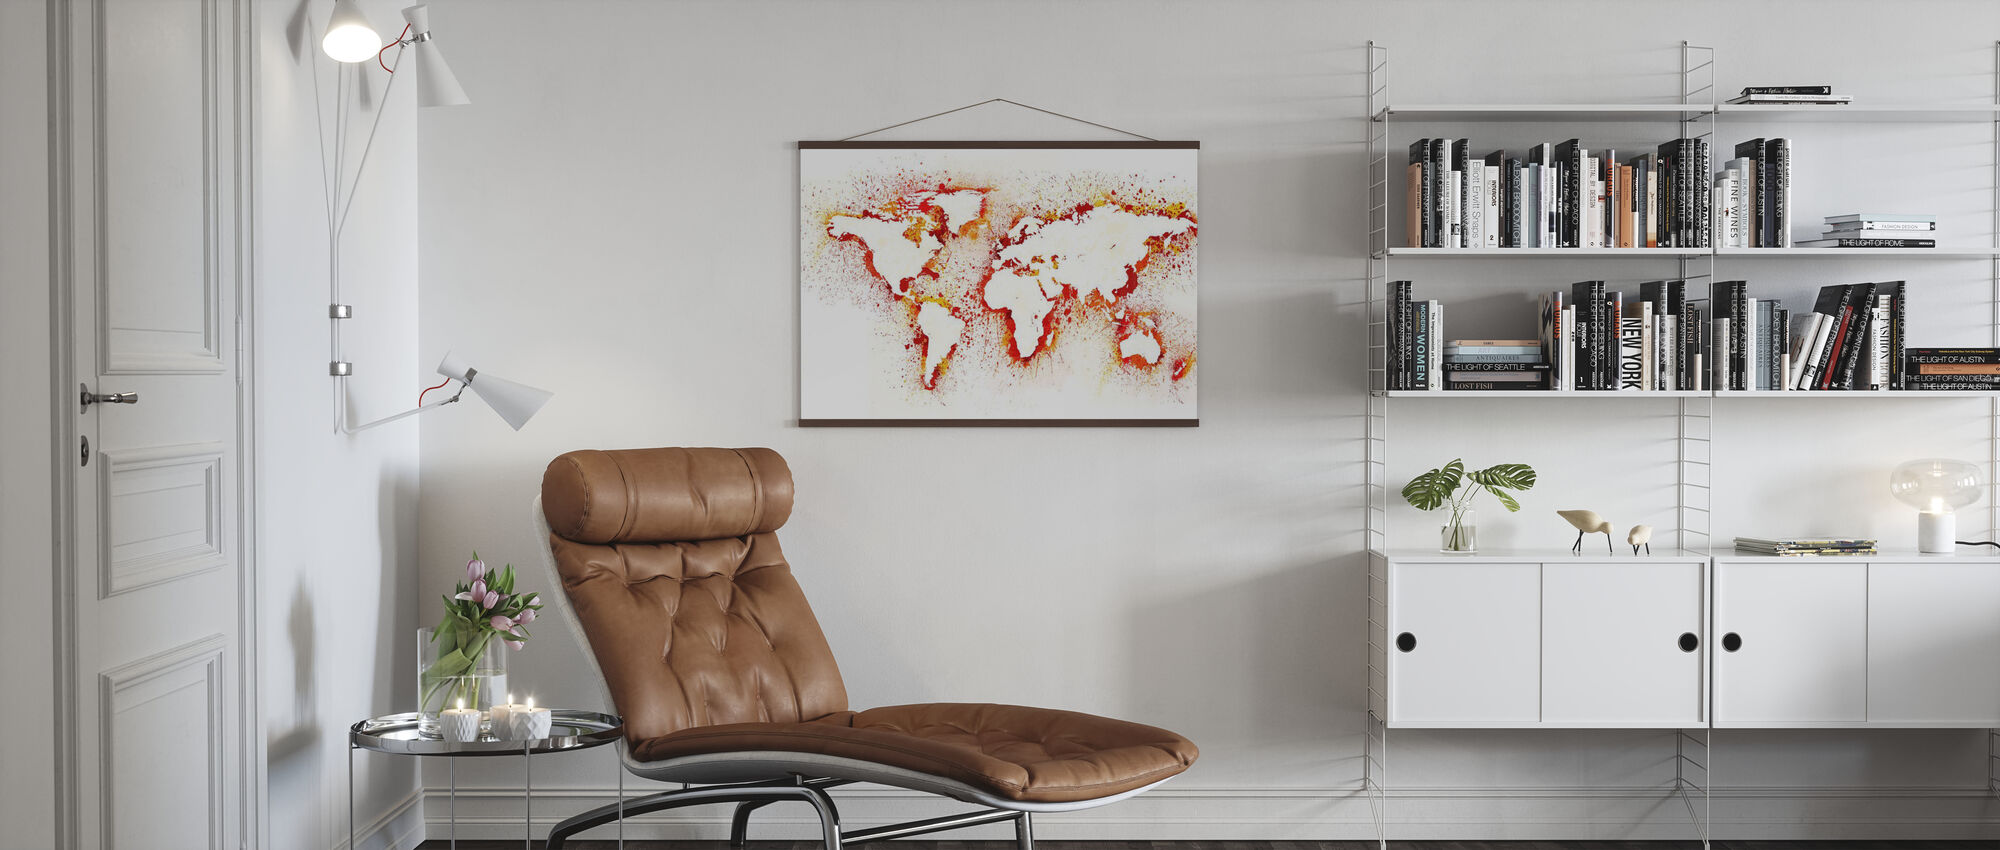 Abstract World Map - Poster - Living Room